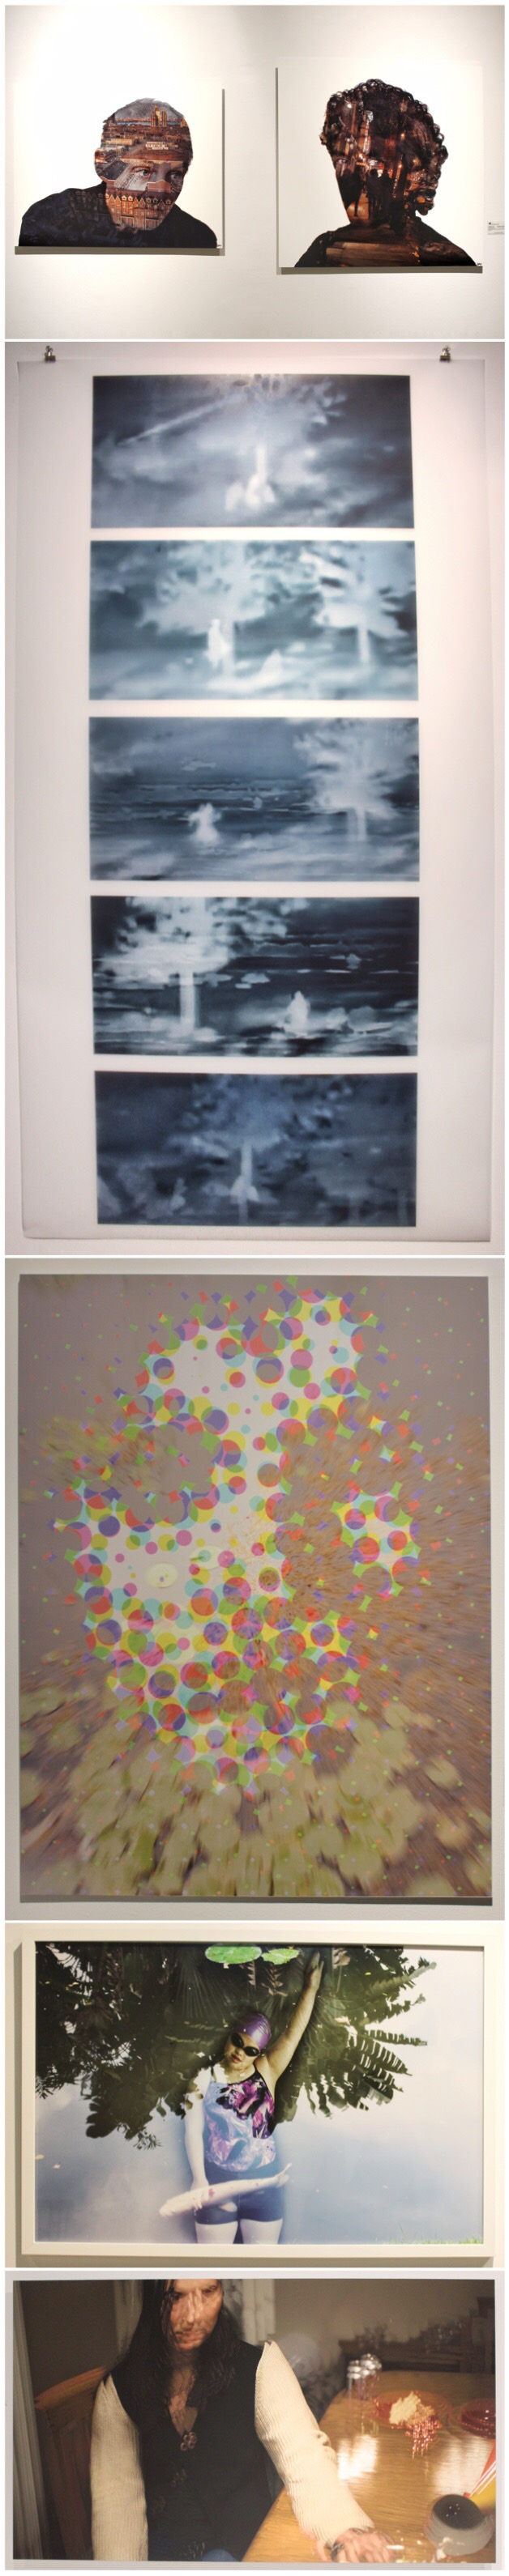 1. (l) Annette Seip,  City Days,  2017, archival pigment print on aluminum dibond.     (r) Annette Seip,  City Nights,  2017, archival pigment print on aluminum dibond.  2. Jan Swinburne,  Marks of Sin,  2018, digital pigment print on translucent mylar.  3. GENOVA,  Taken,  2017, vinyl print on PVC.  4. Brenda Spielmann,  Beauty,   2017, archival pigment print.  5. Brad Necyk,  Just a Hard Rain #11,  2017, archival pigment print on aluminum dibond.